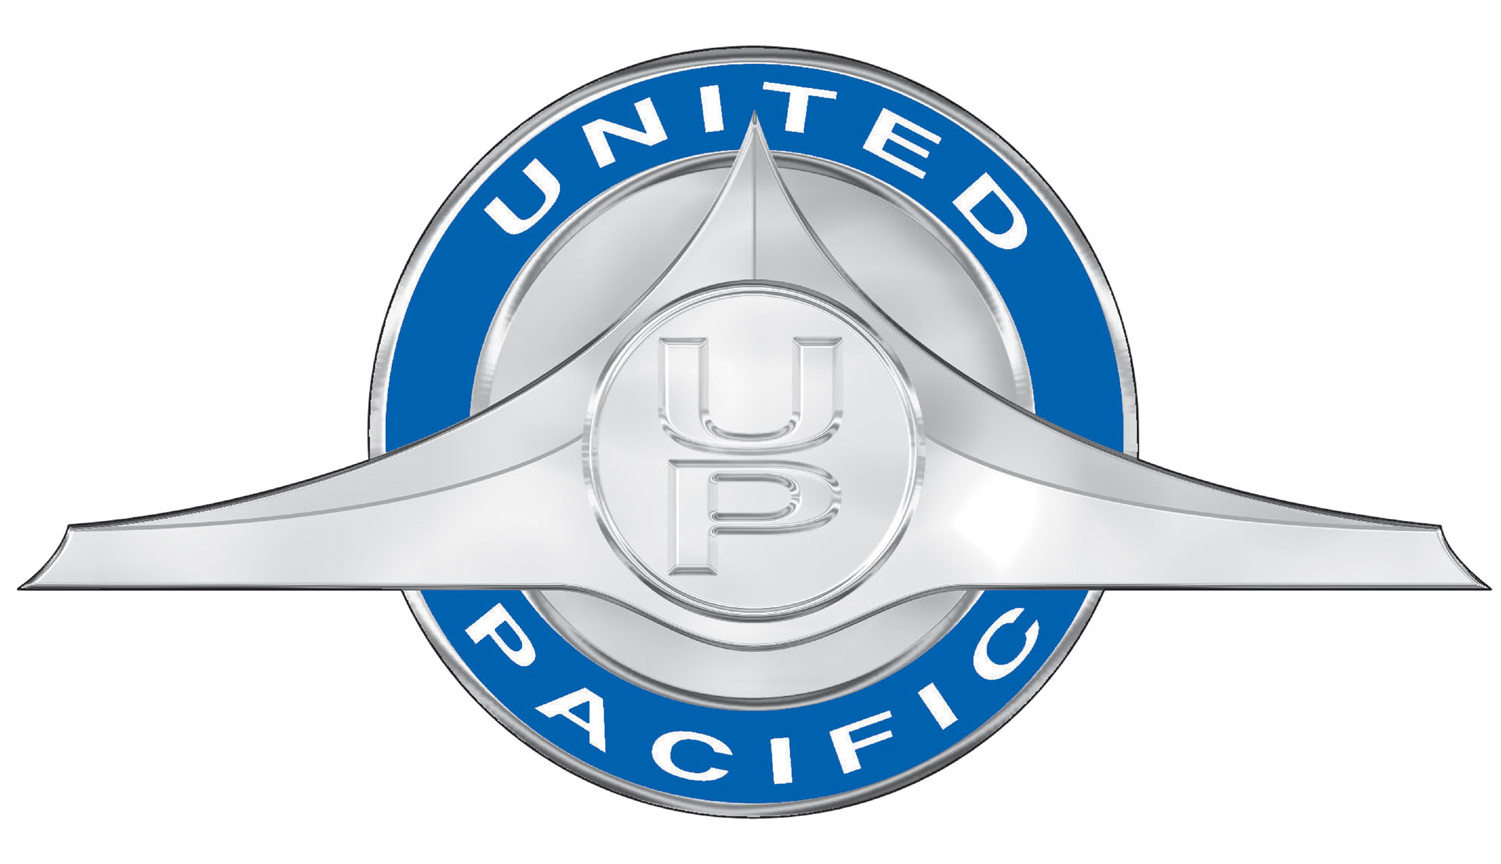 united-pacific-2016-logo.jpg